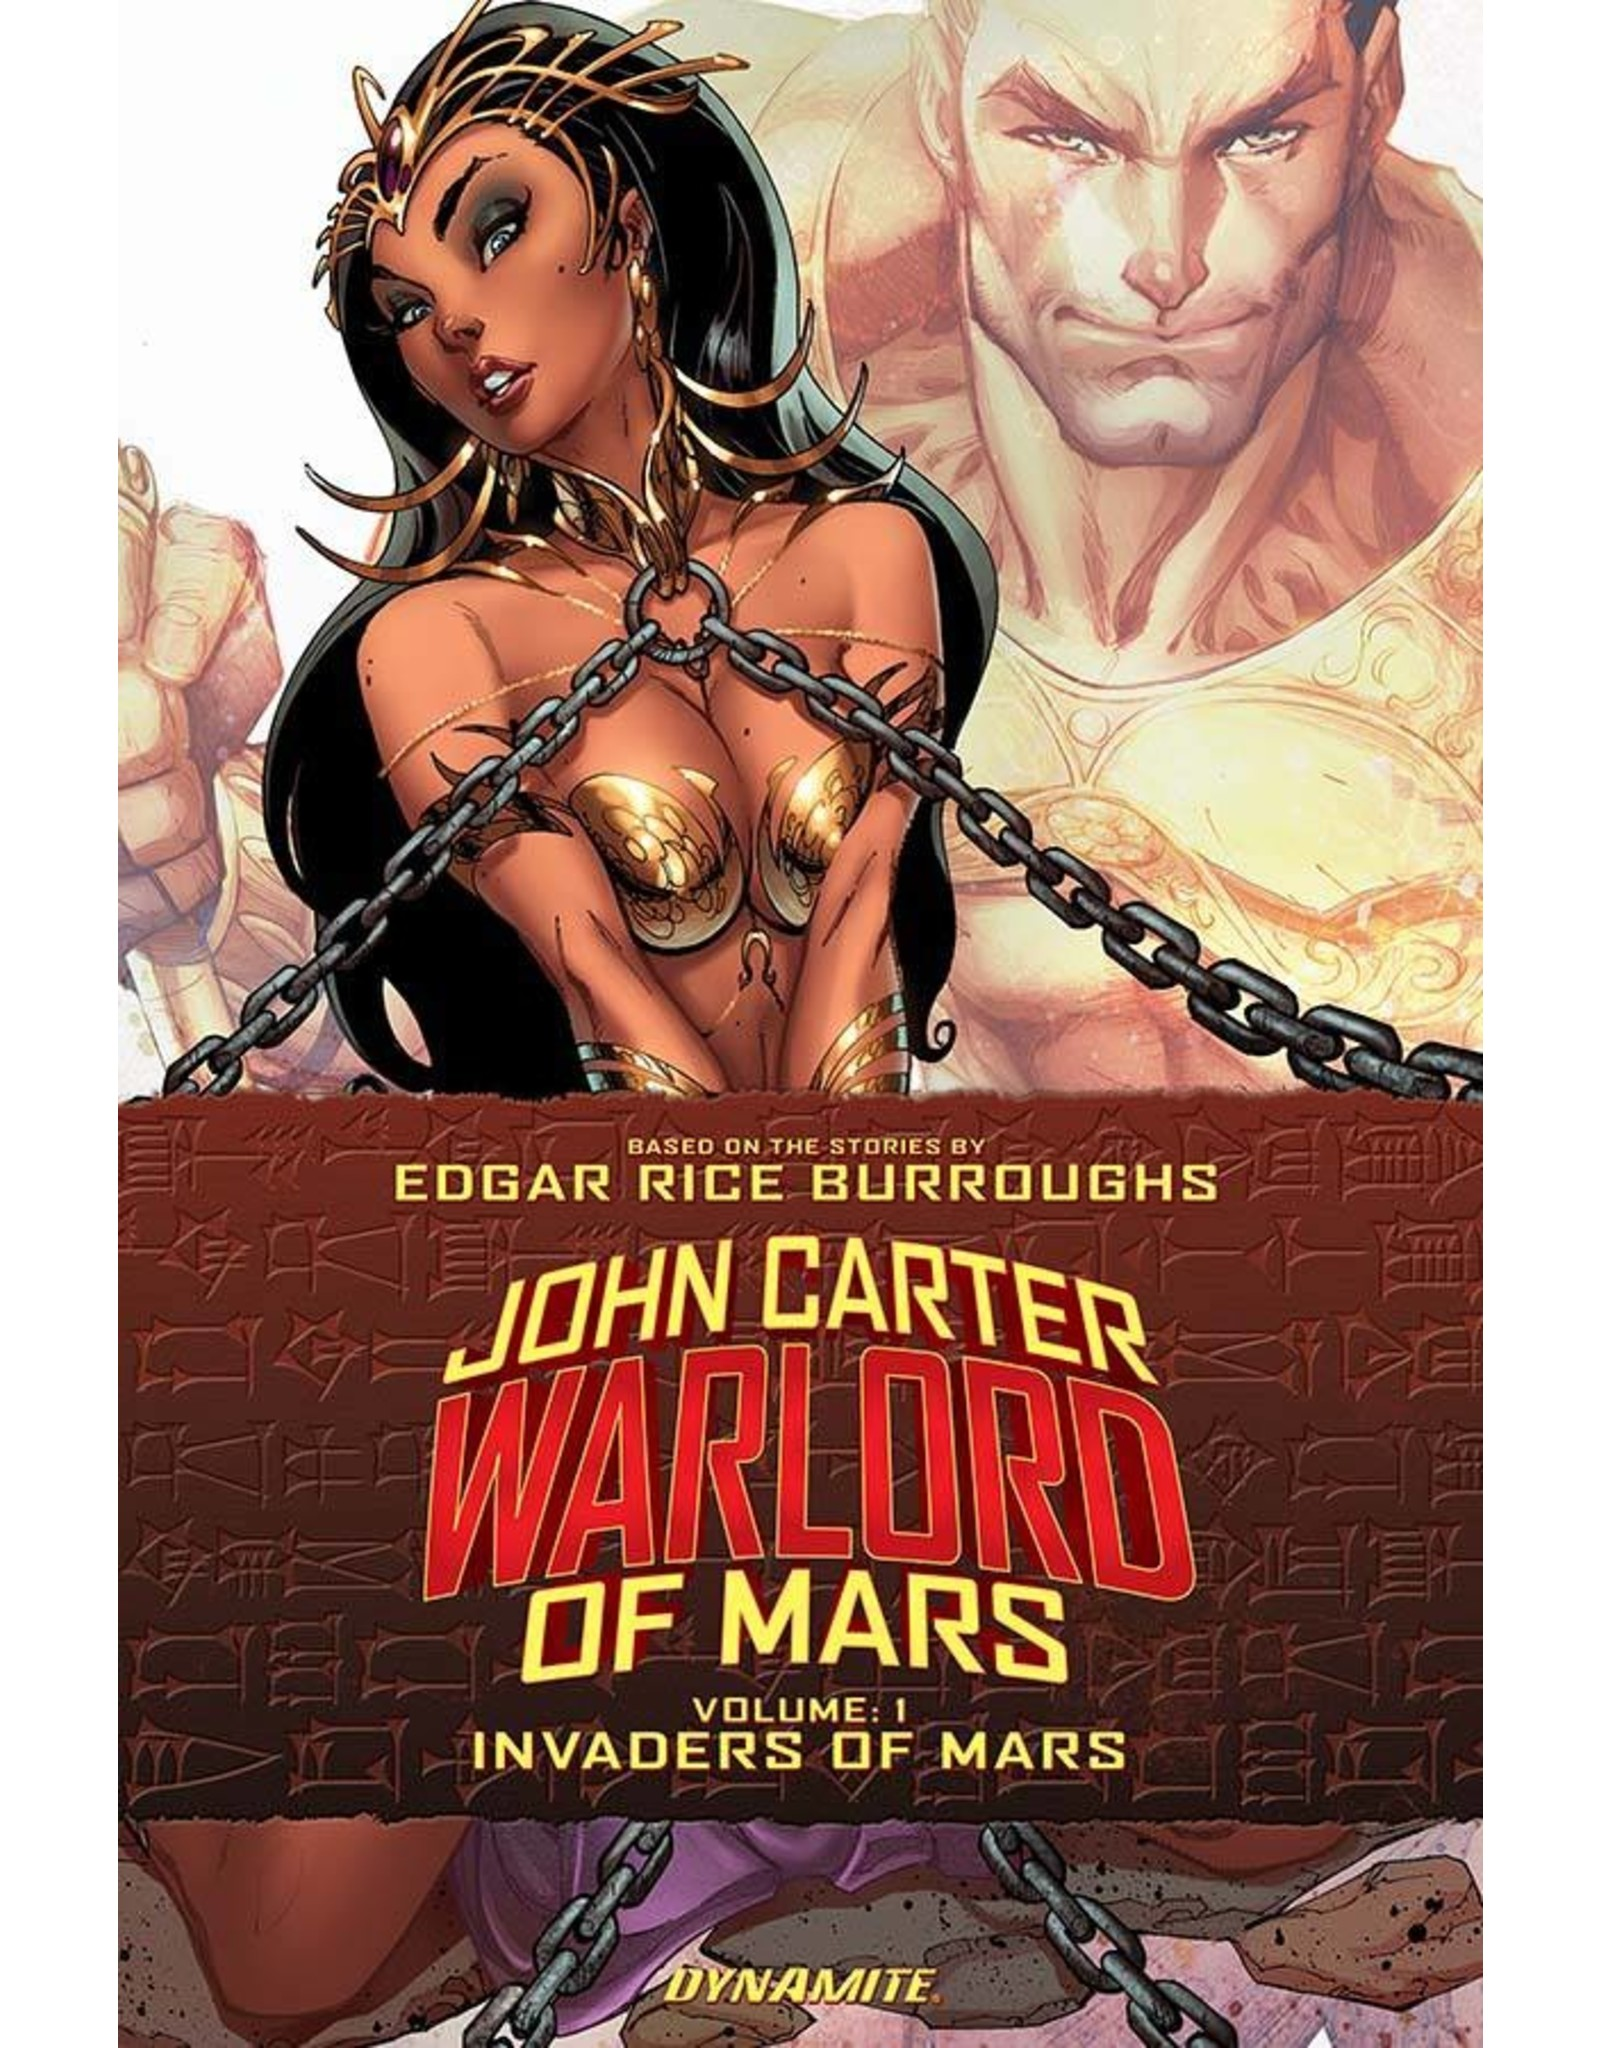 D. E. JOHN CARTER WARLORD TP VOL 01 INVADERS OF MARS